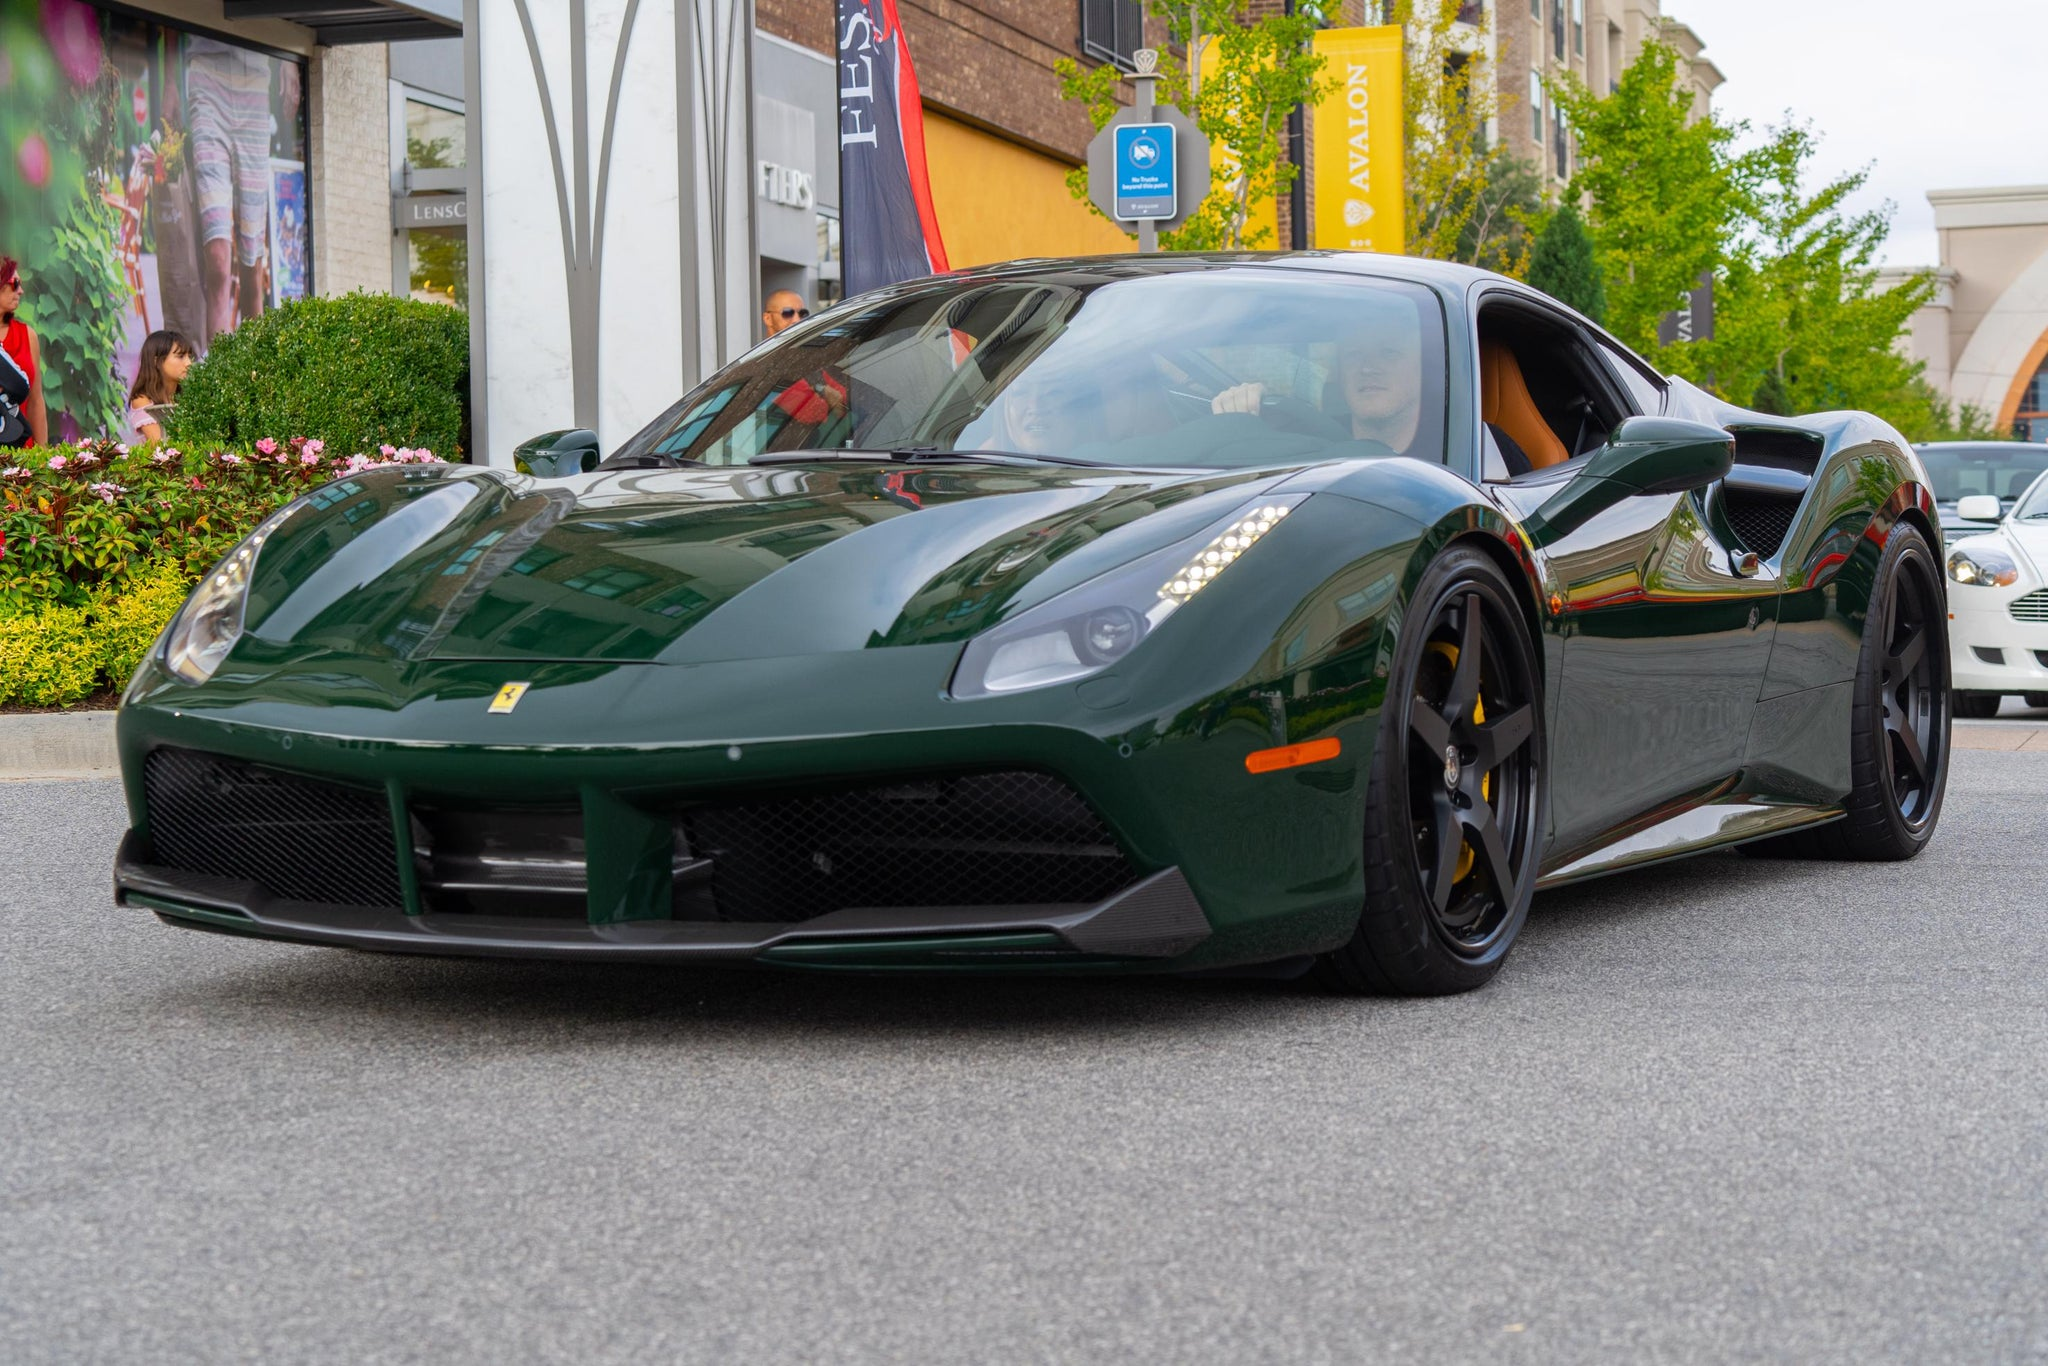 Verde British Racing Ferrari 488 GTB